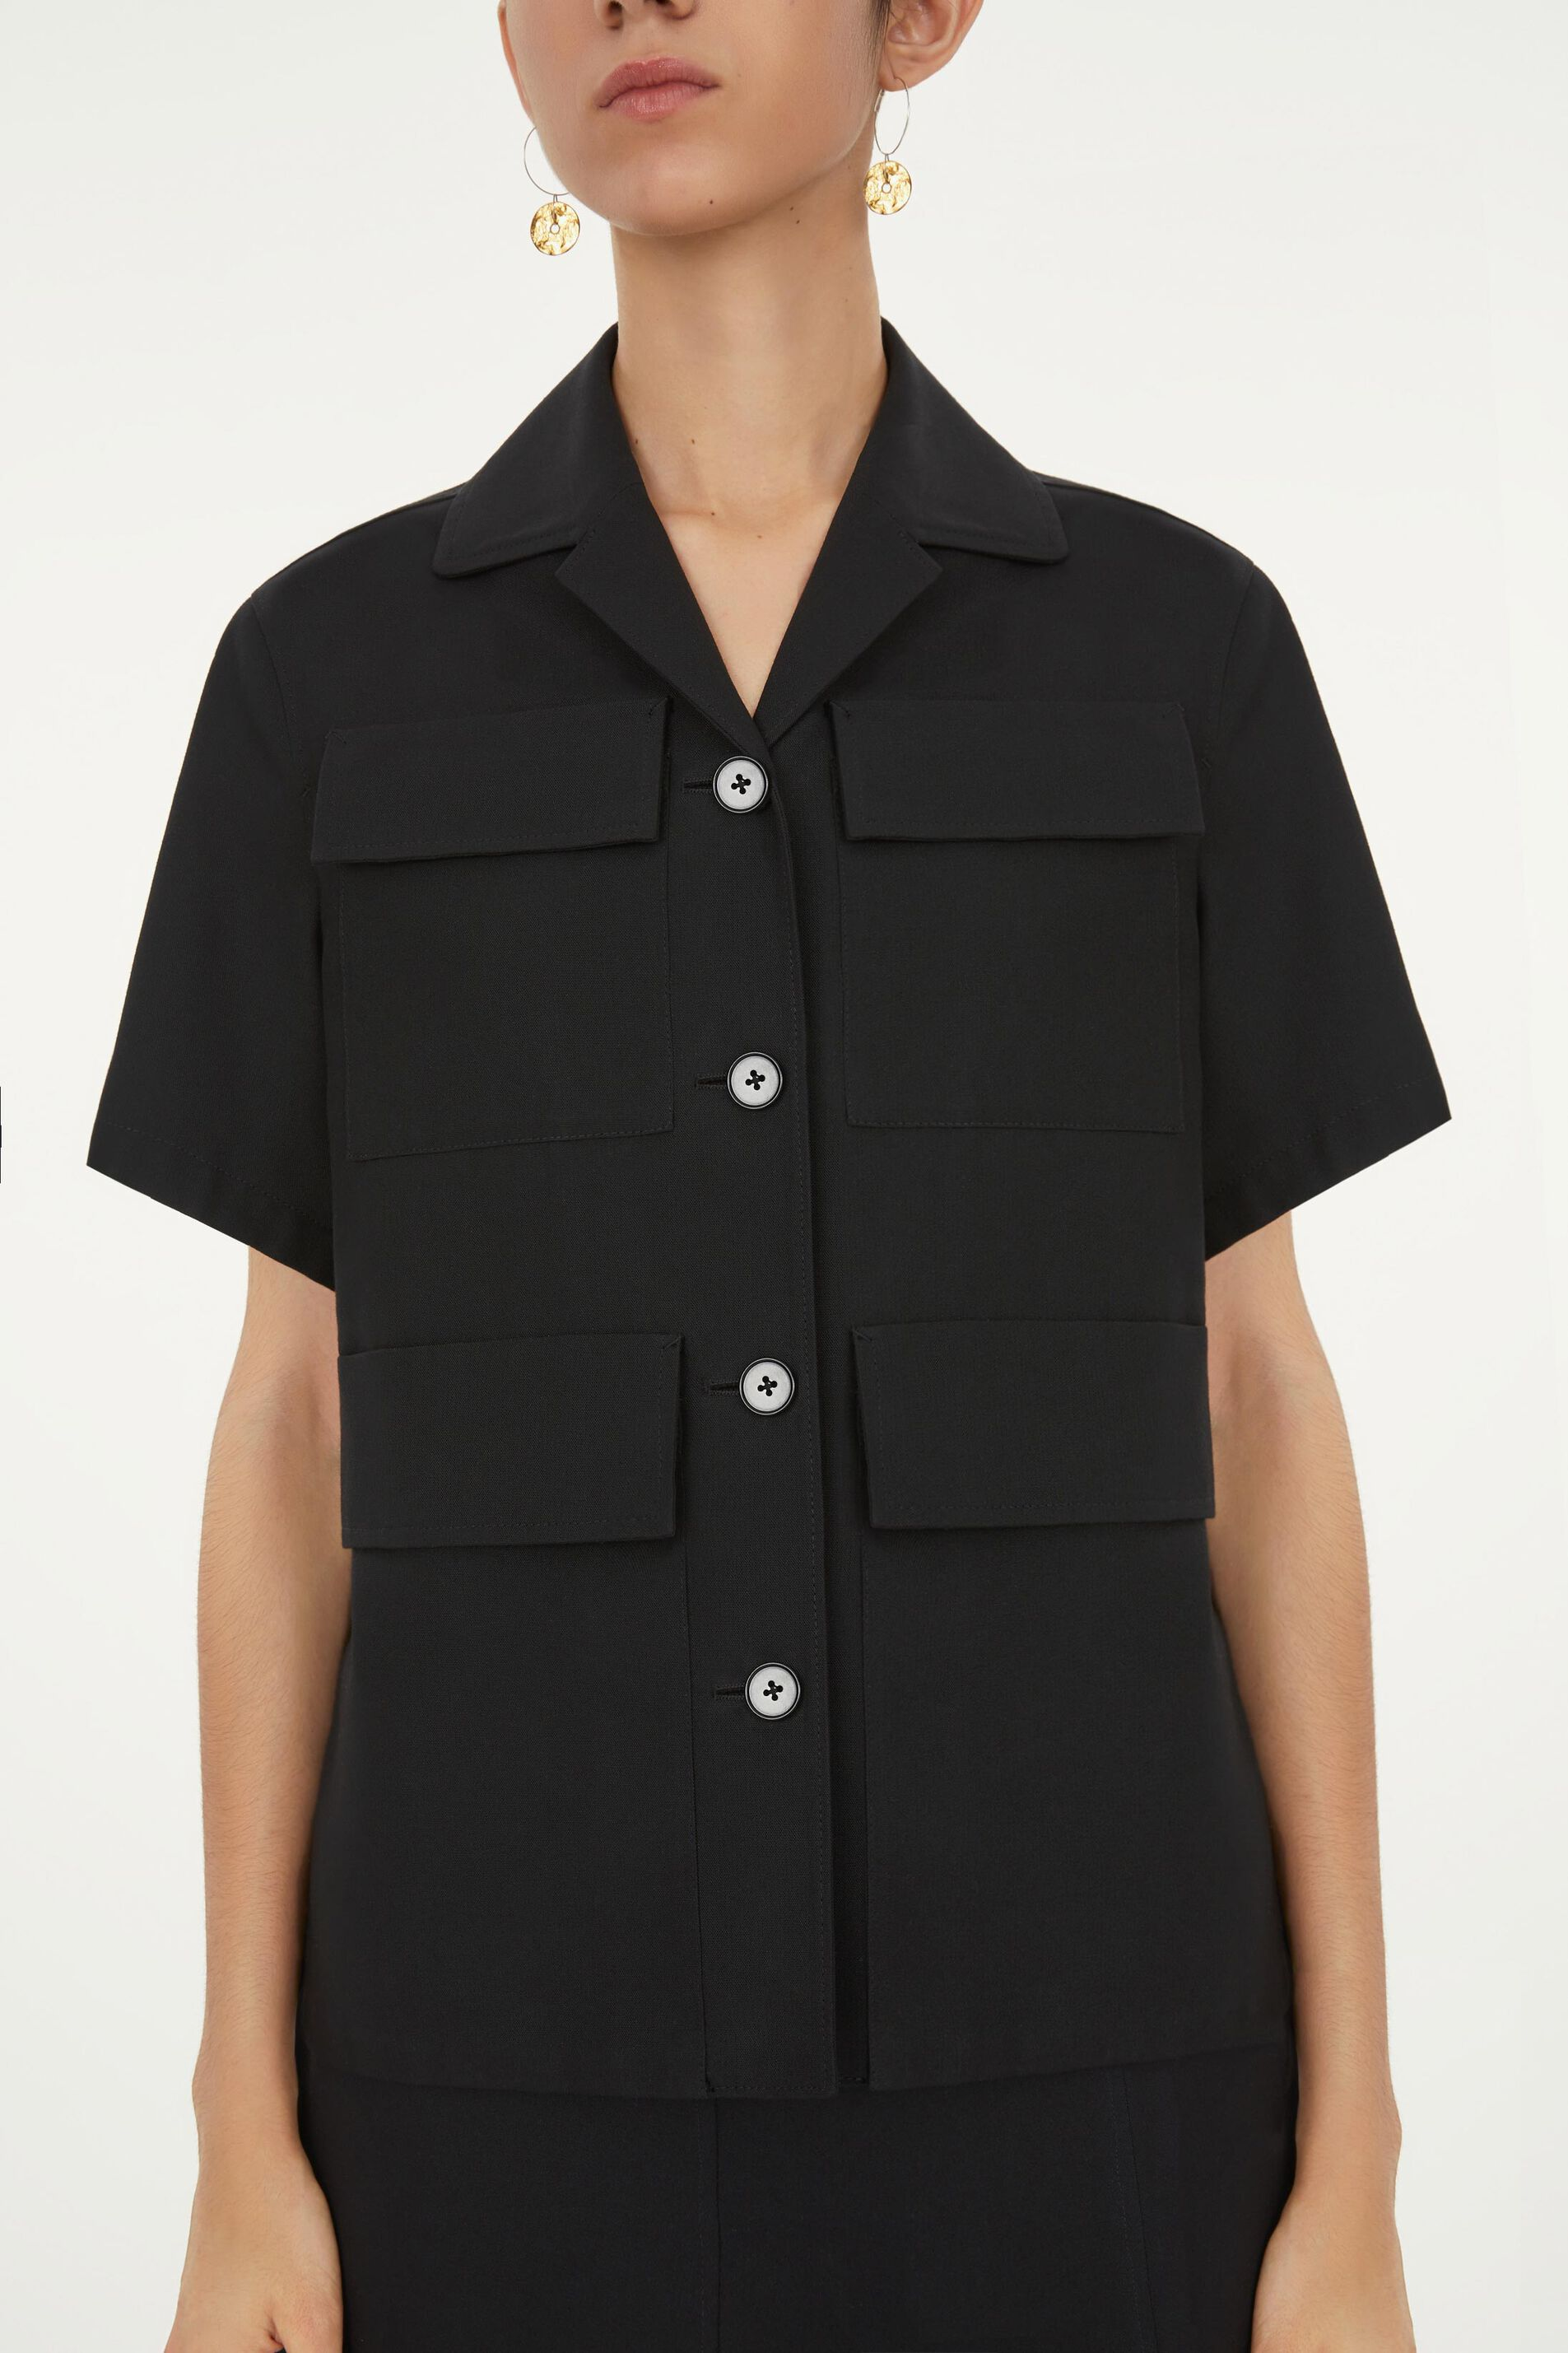 Shirt Jacket, black, large